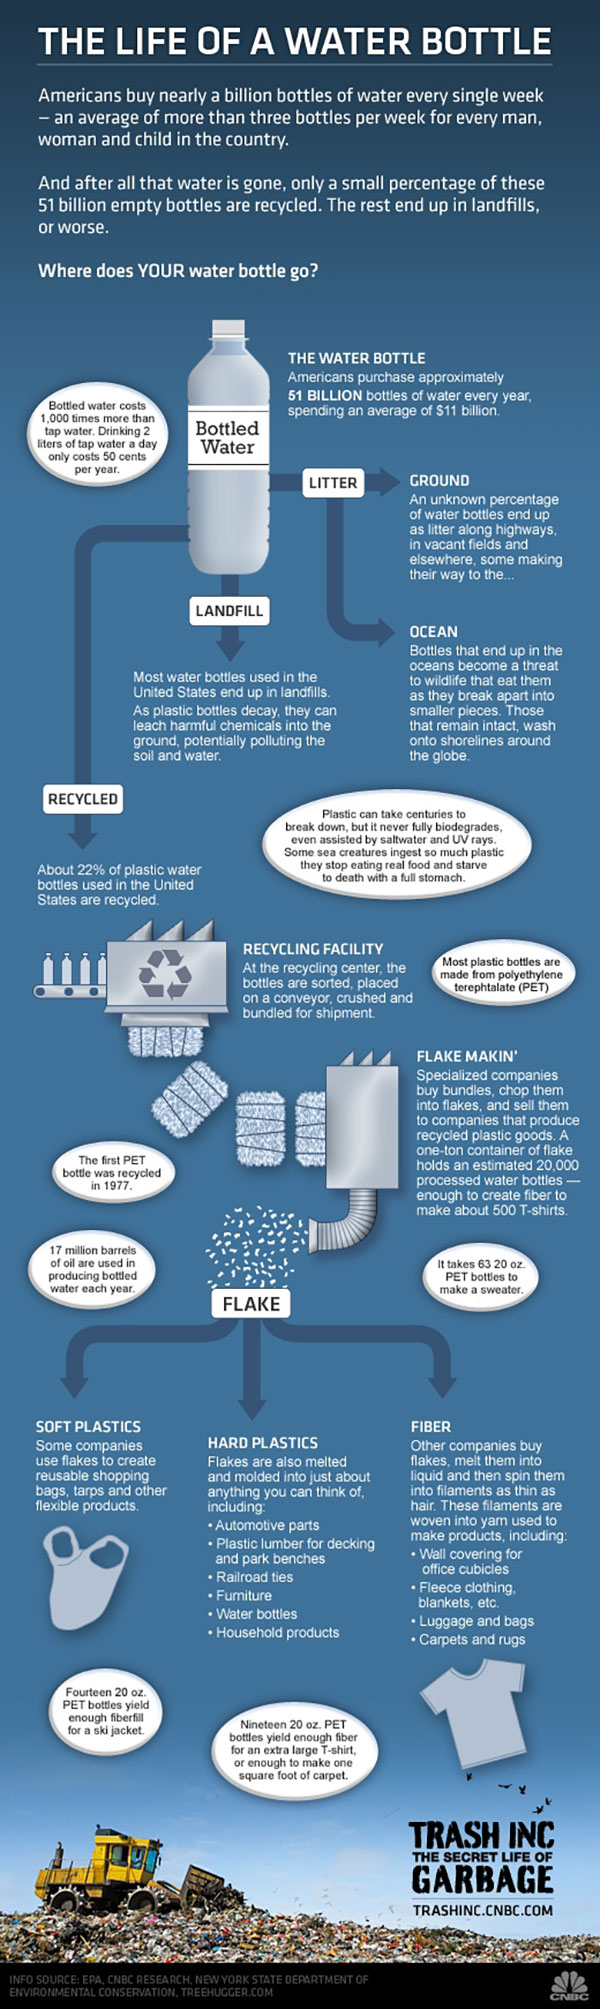 TRASH_INC_Water_Bottle_Infographic